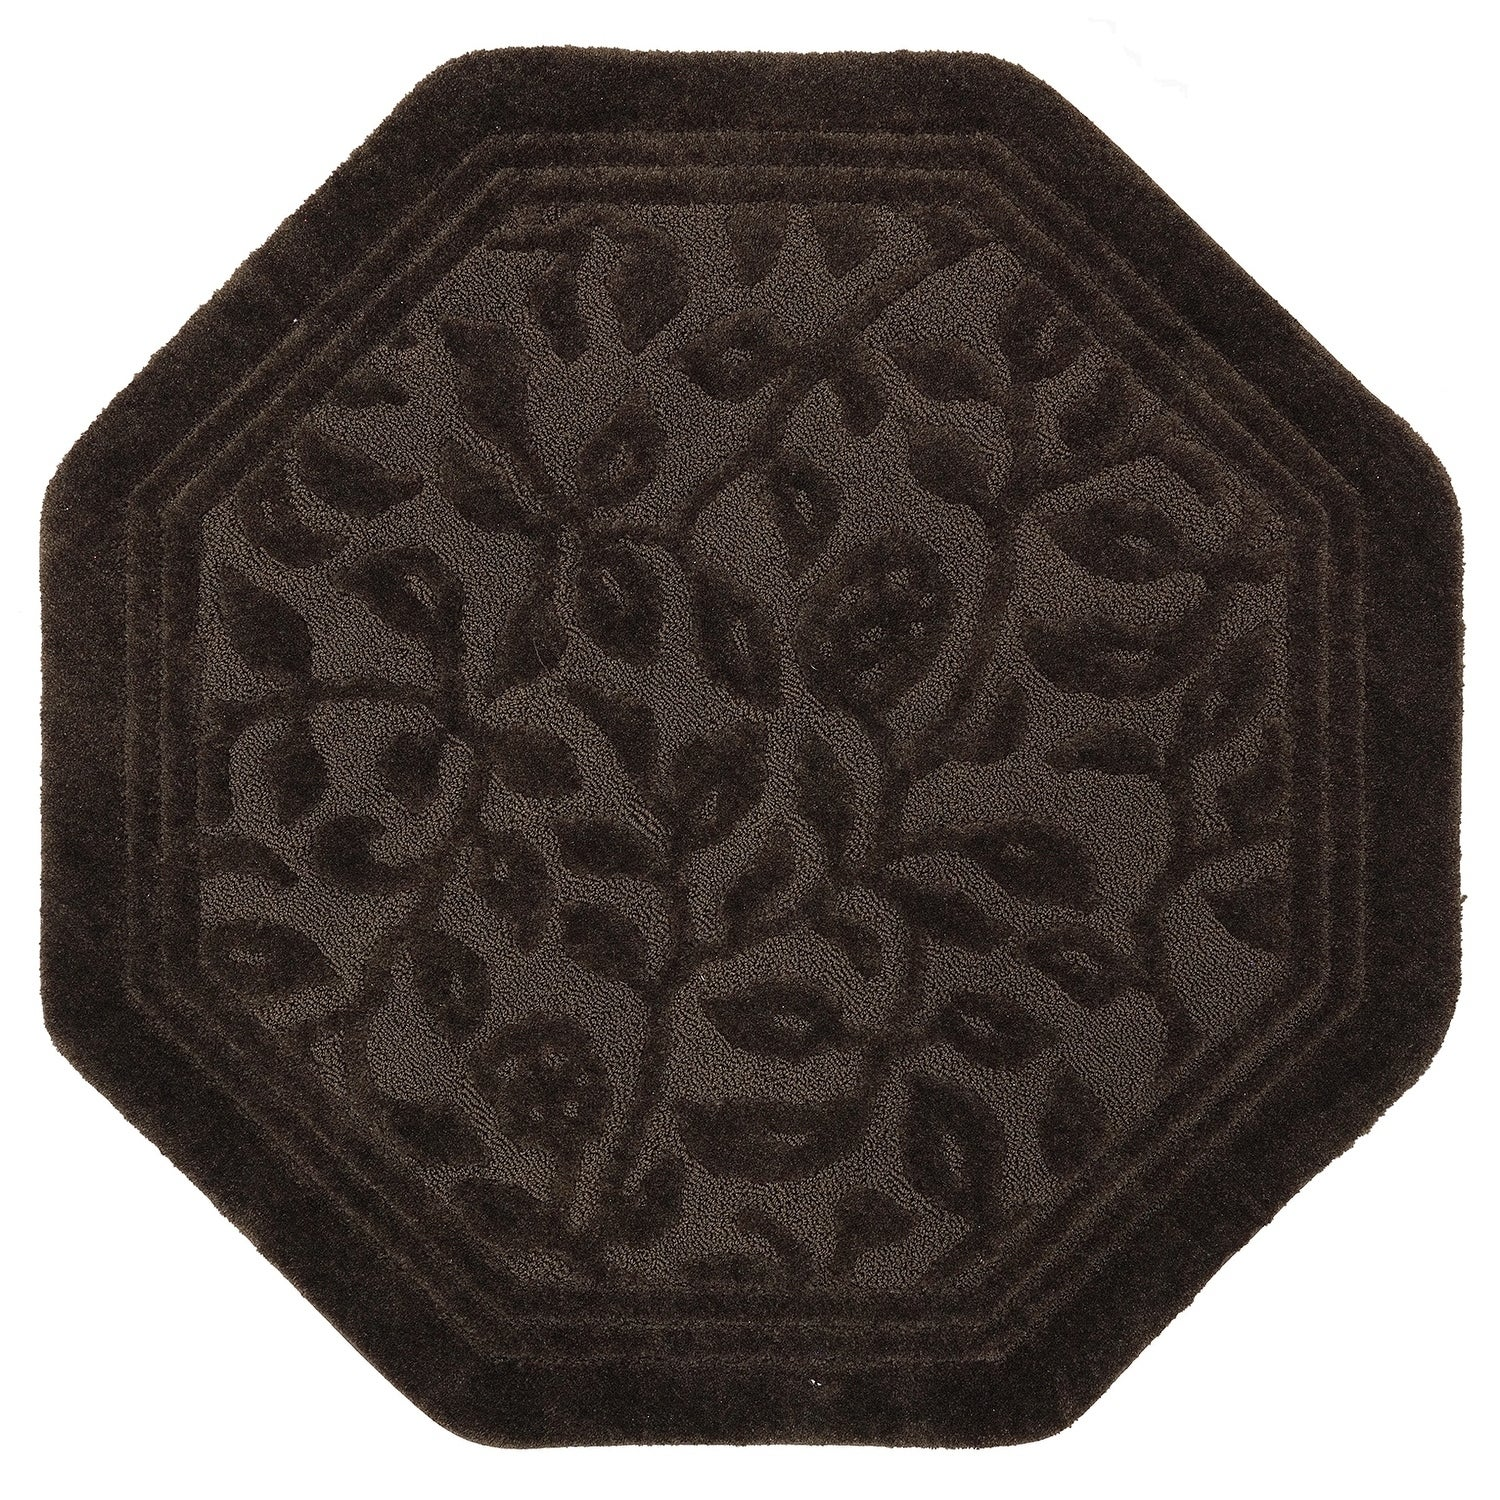 interior sets fabulous kitchen appealing mohawk fatigue foam memory walmart mat lowes rugs anti mats brown bathroom rug bath decorative costco